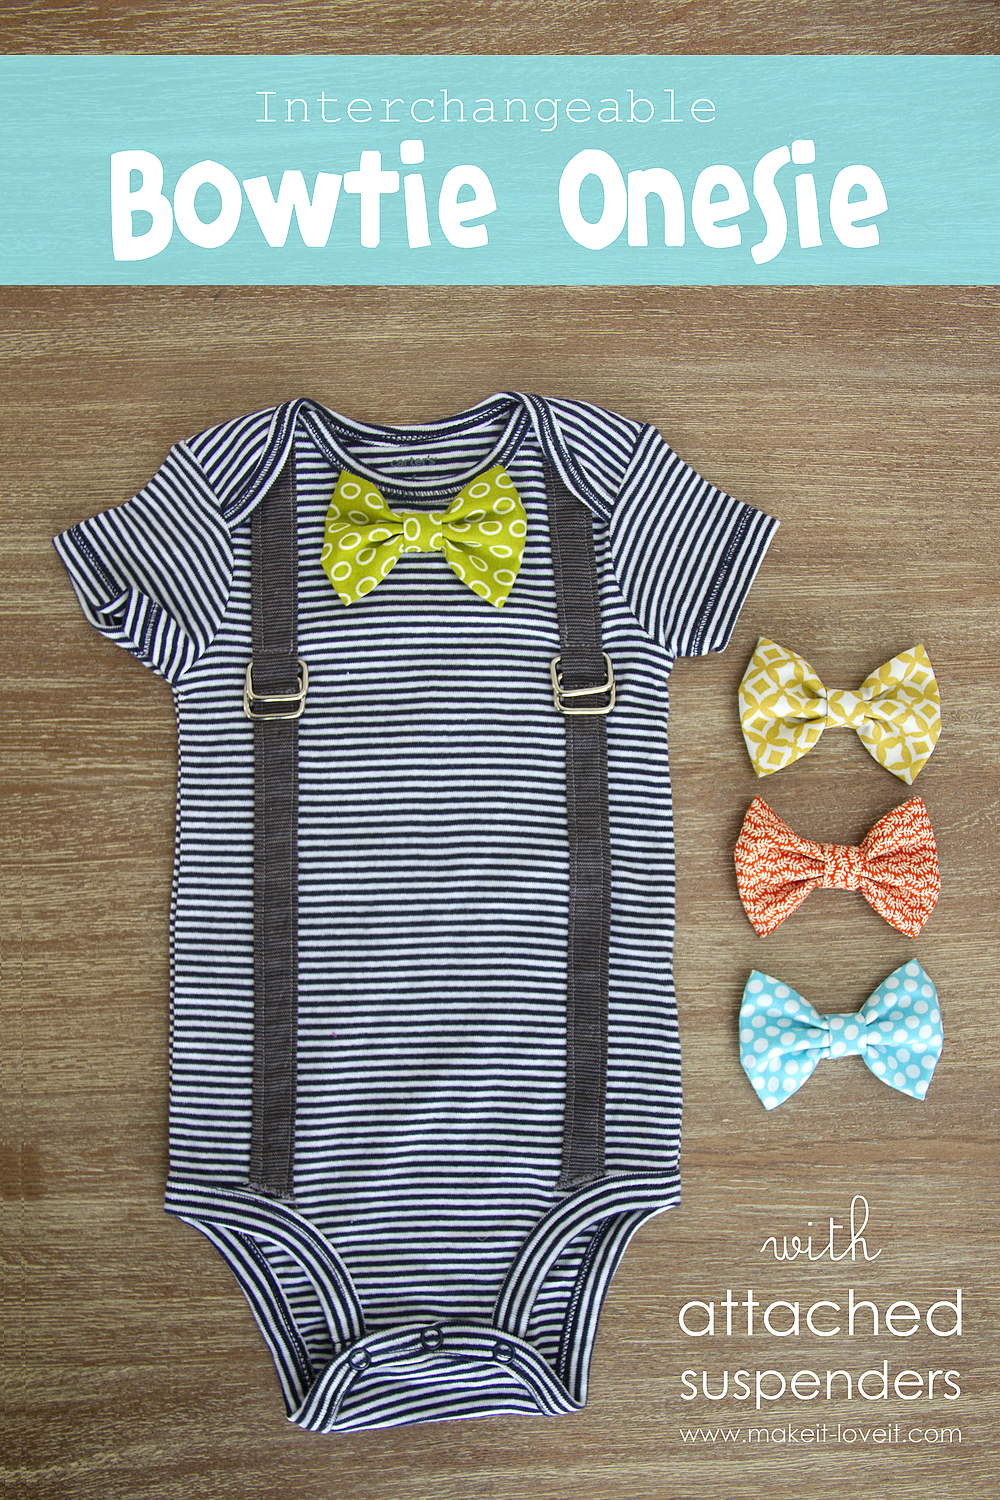 Interchangeable Bowtie Onesie.with Attached Suspenders (2.